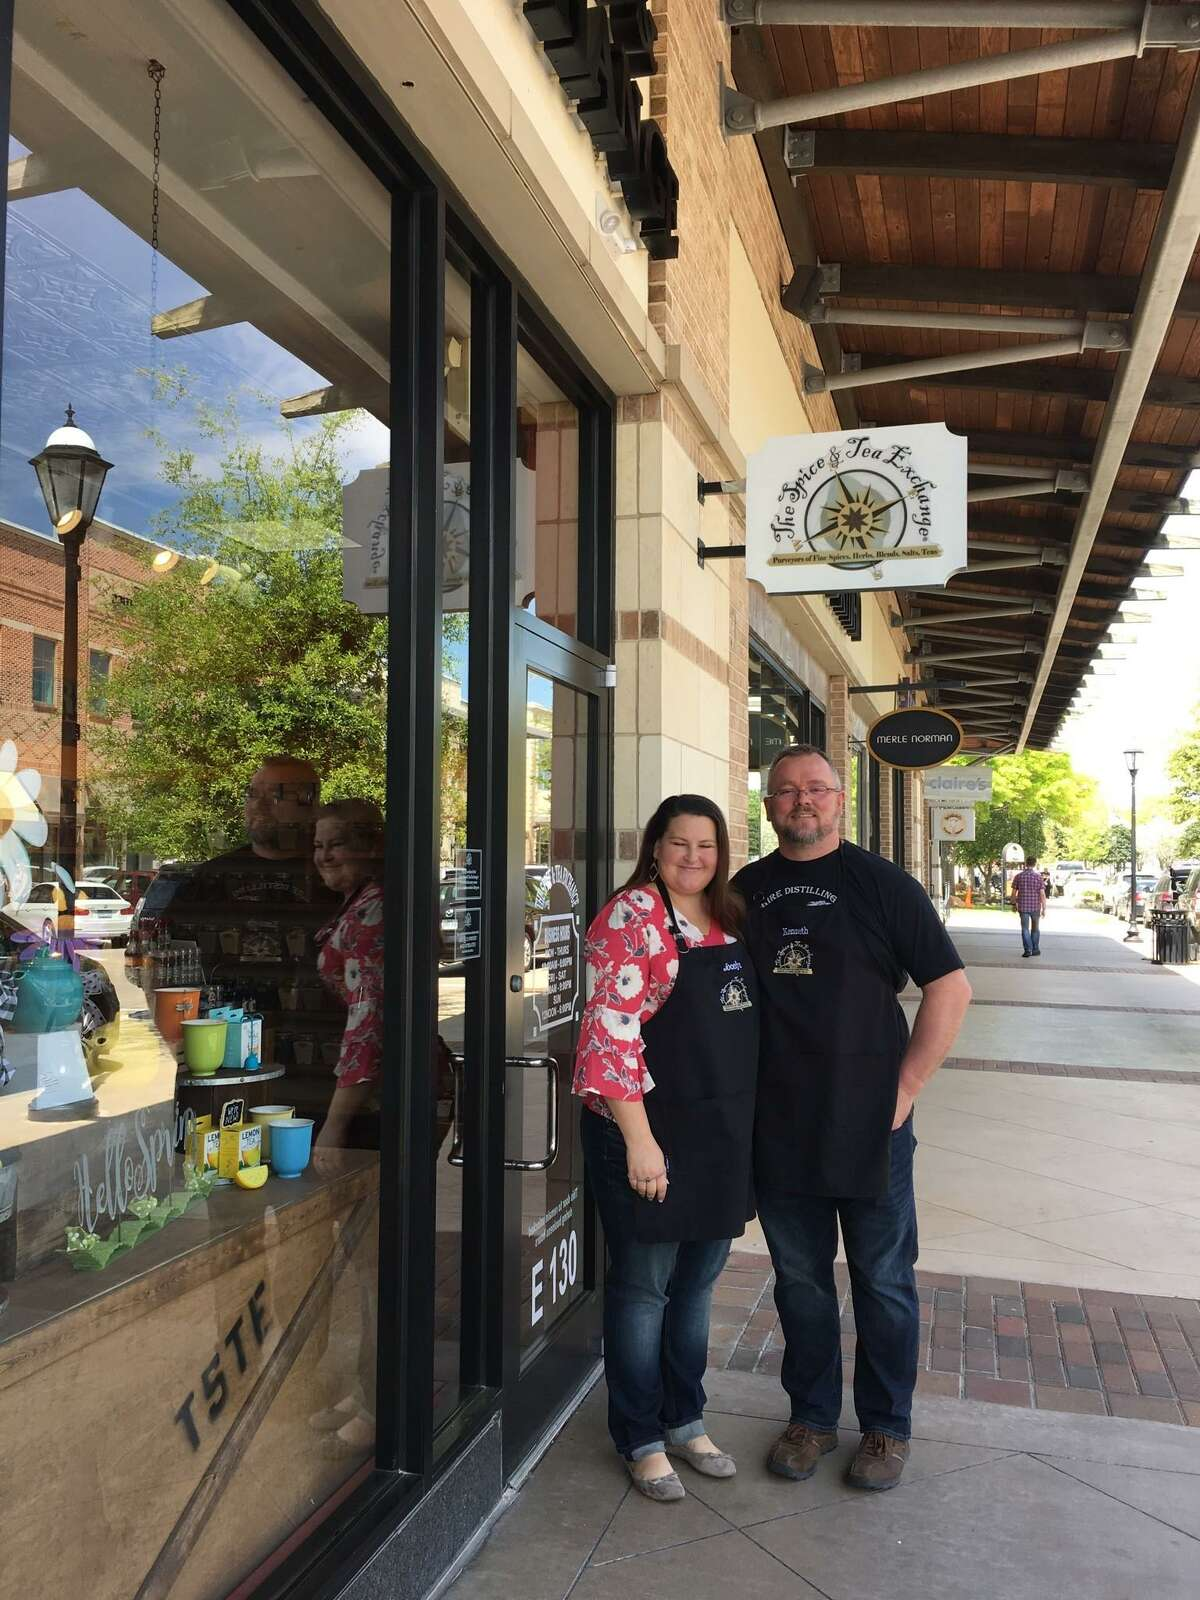 Jocelyn and Kenneth Schneider decided they didn't want any more job transfers and wanted to stay in the Katy area after four years in Alaska. So they opened in December The Spice & Tea Exchange in Cinco Ranch.